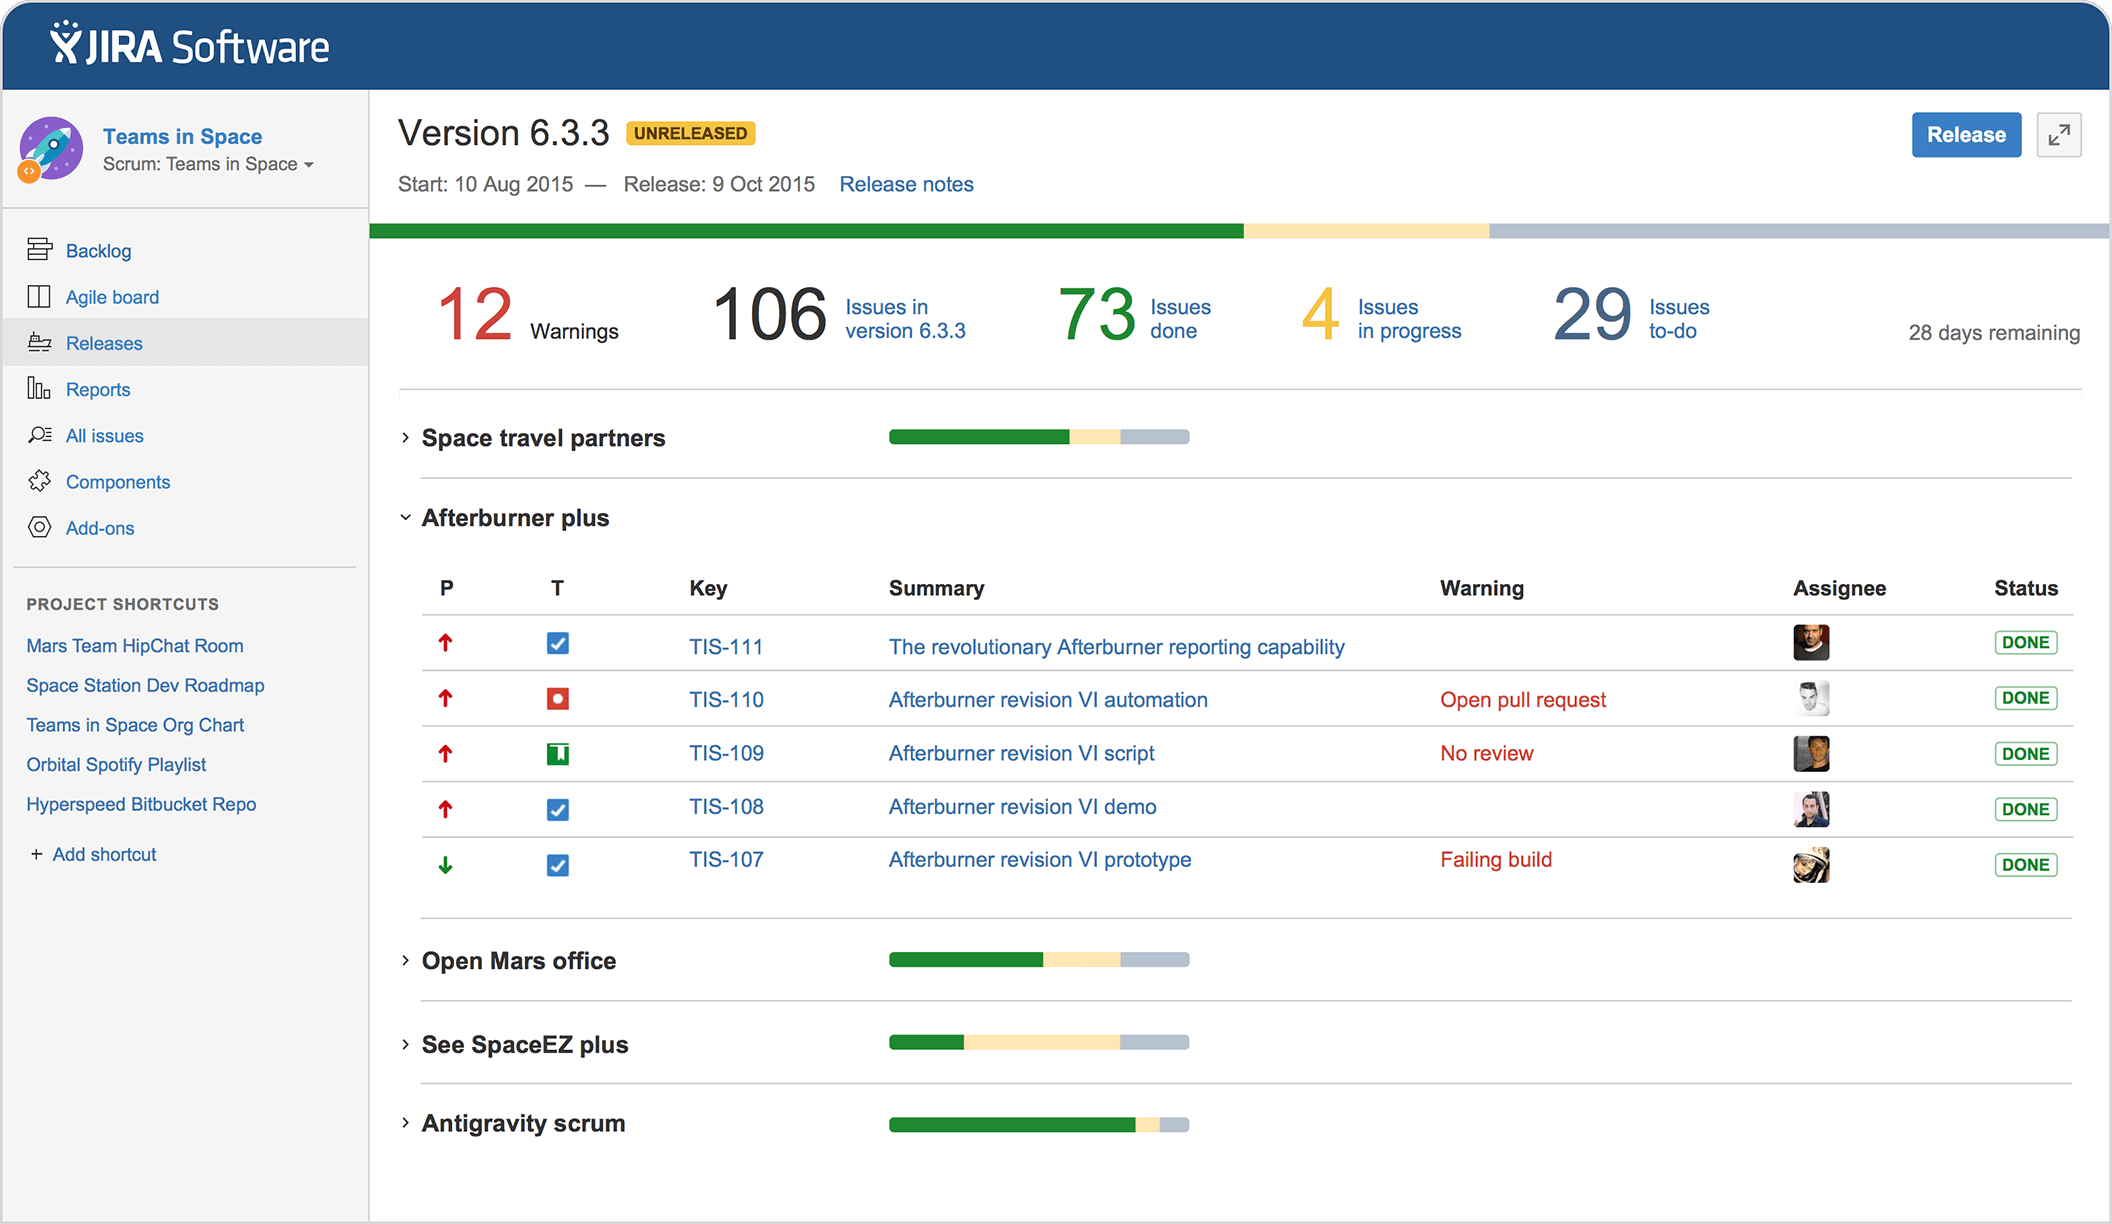 Jira Software Issue Project Tracking For Software Teams Project Tracking Software Project Management Dashboard Software